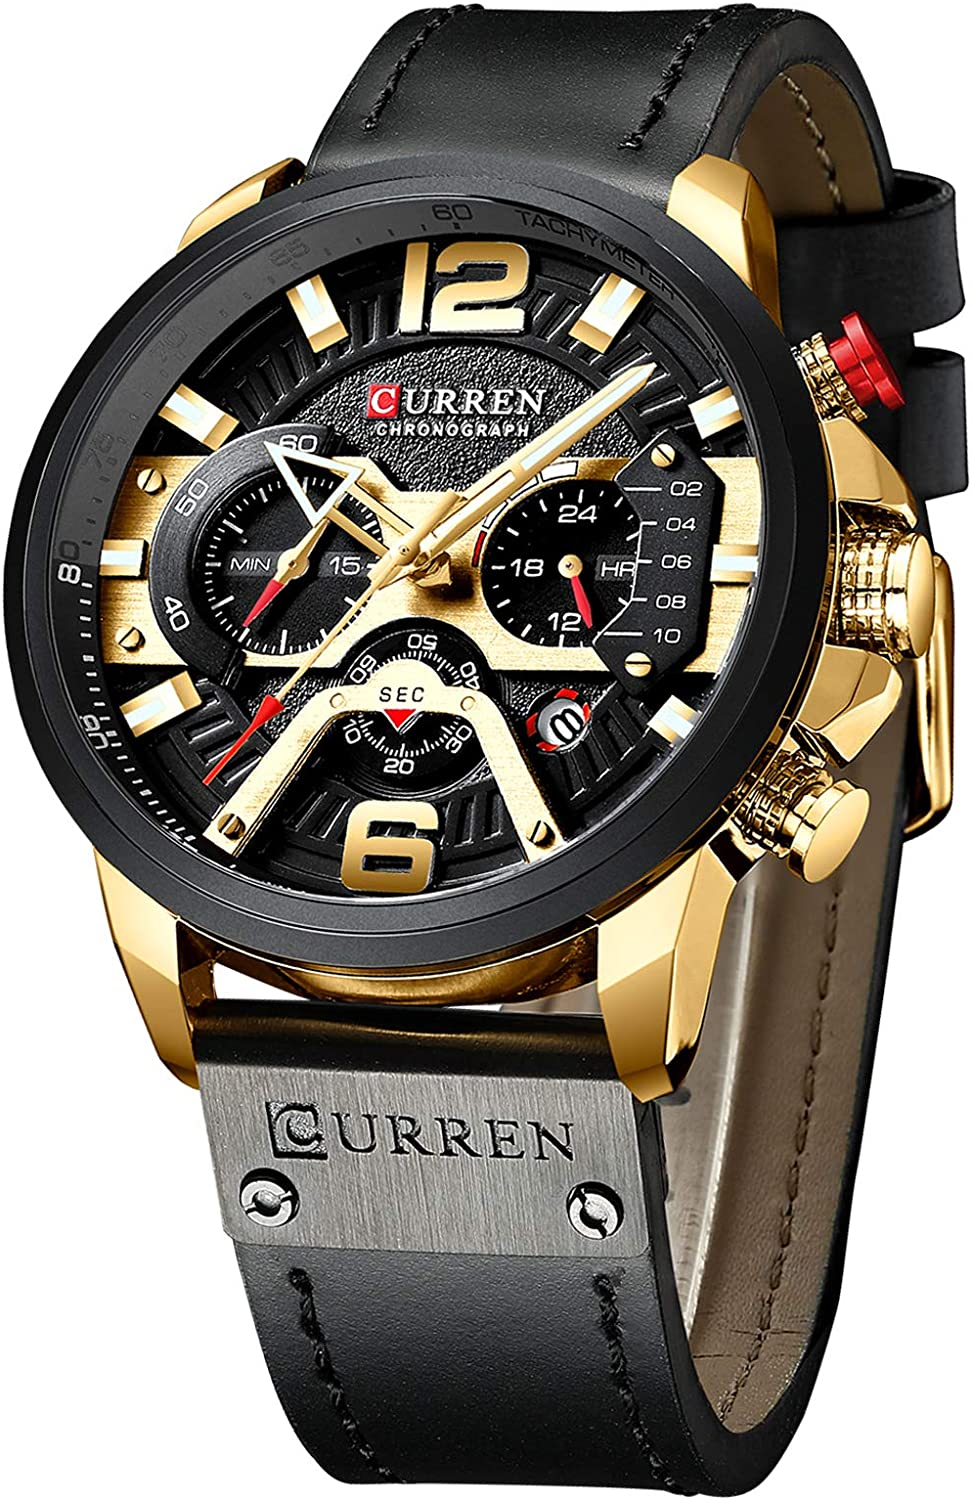 Luxury Men s Gold-Tone Watch Analog Quartz Military Waterproof Wrist Watches for Men Leather Band 24 Hours Chronograph Black